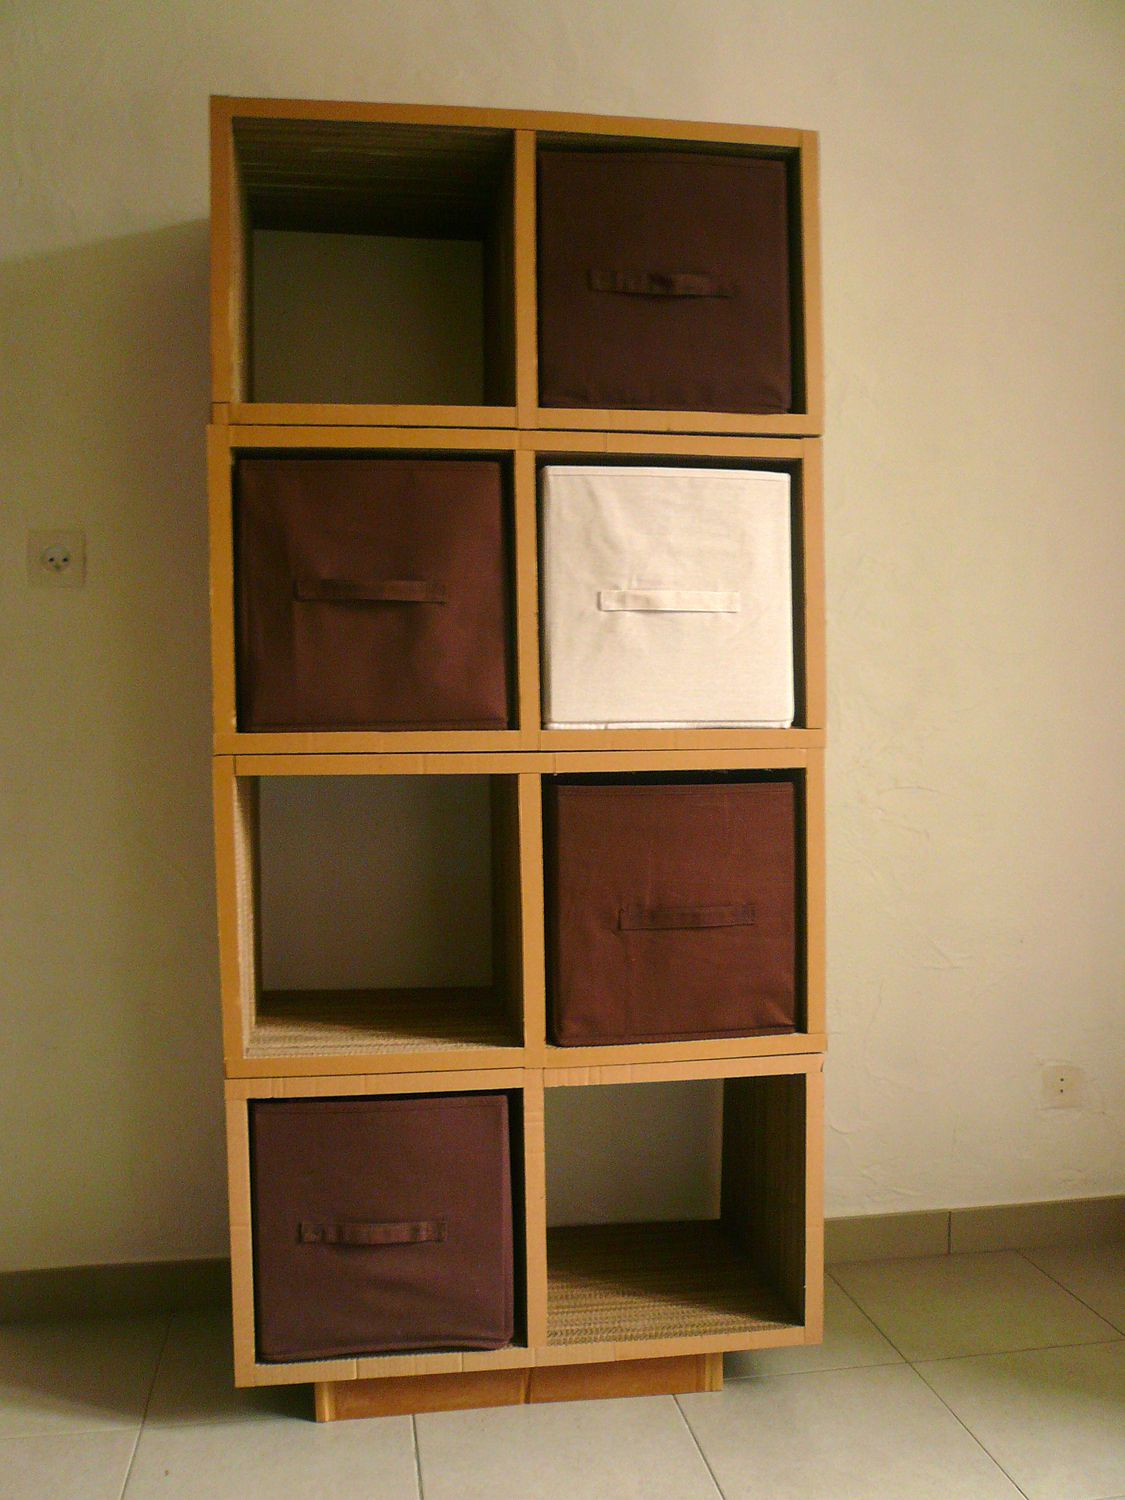 Customiser meuble ikea cube sammlung von for Customiser meuble ikea